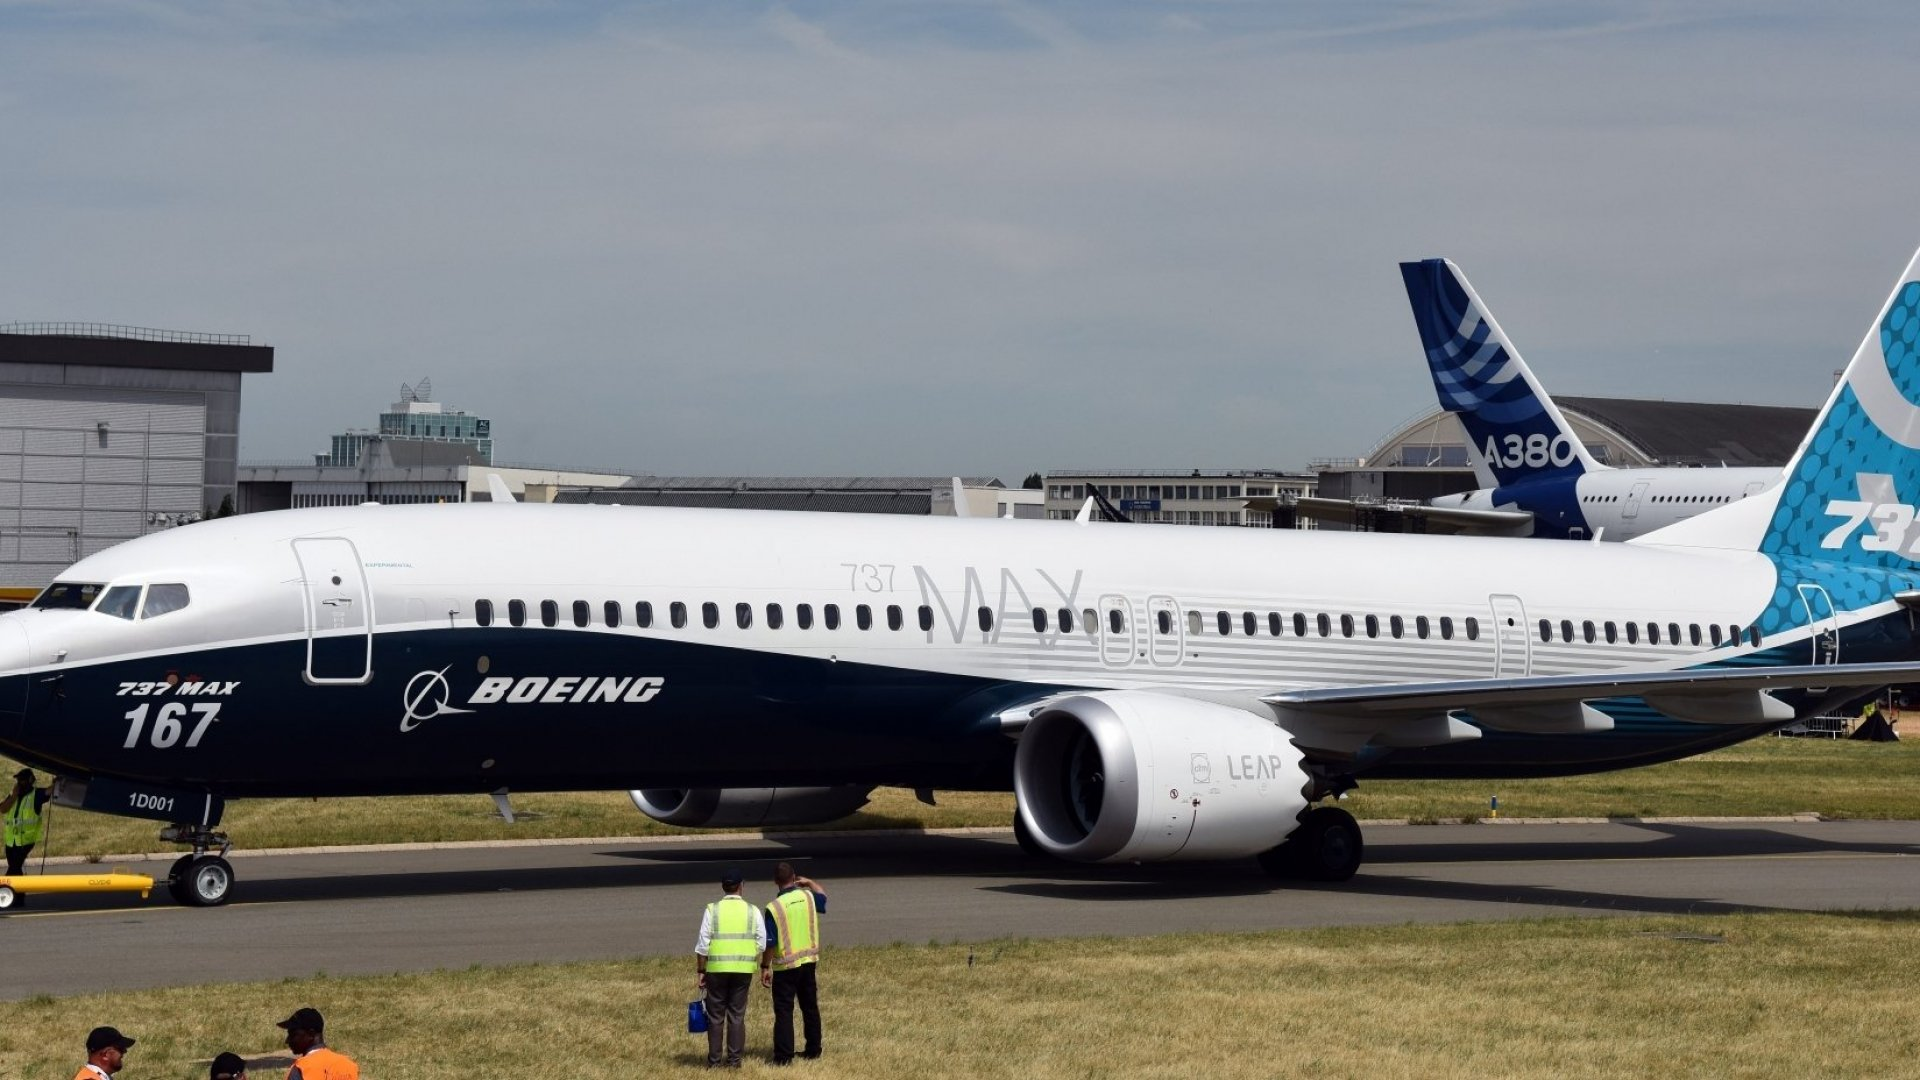 Boeing's CEO Just Apologized for the Crashes of the Company's Troubled 737 Max Aircraft (Was It Too Little Too Late?)